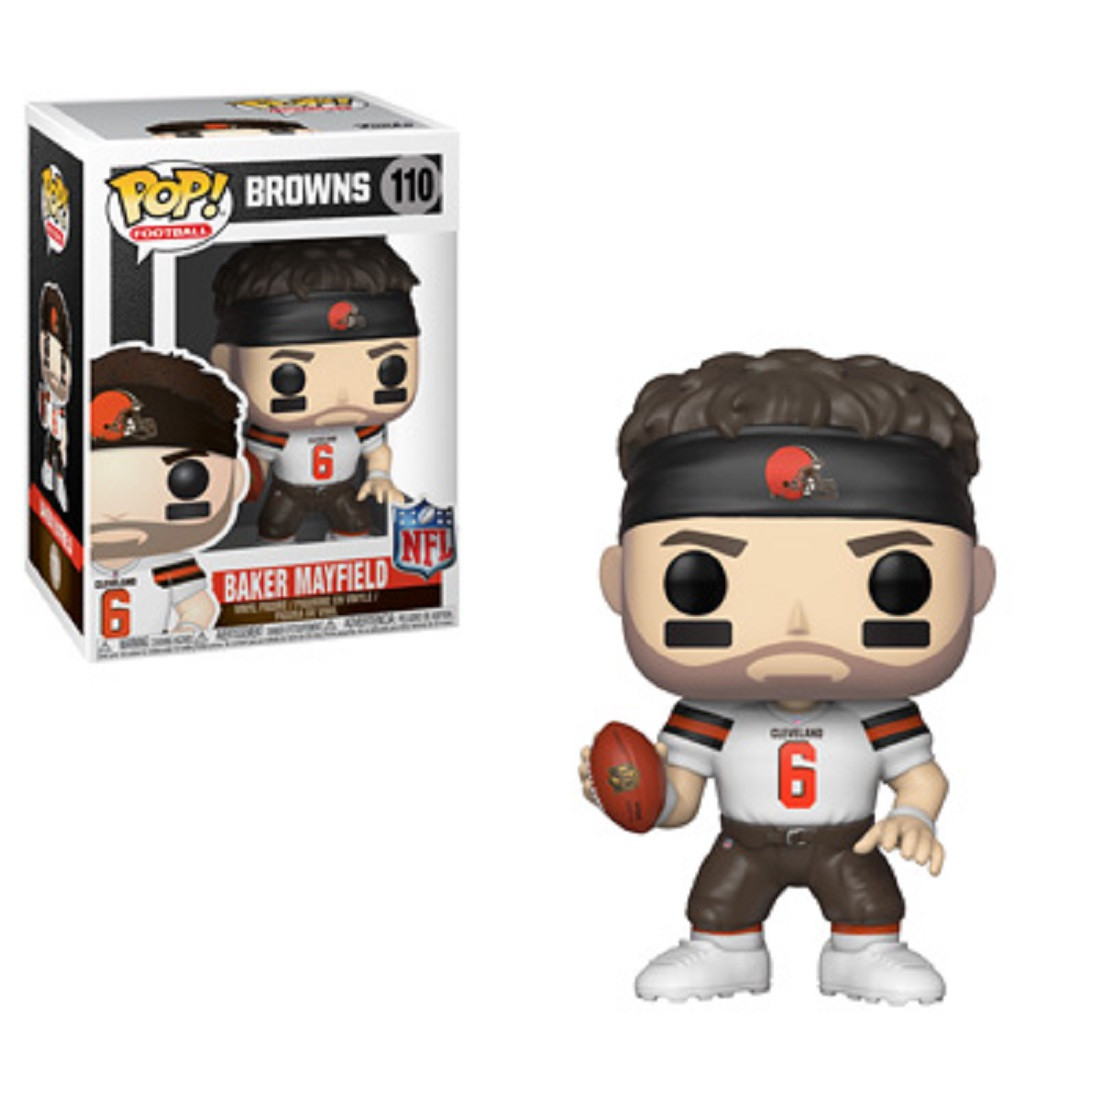 Funko POP - NFL - Draft - Baker Mayfield - Vinyl Collectible Figure